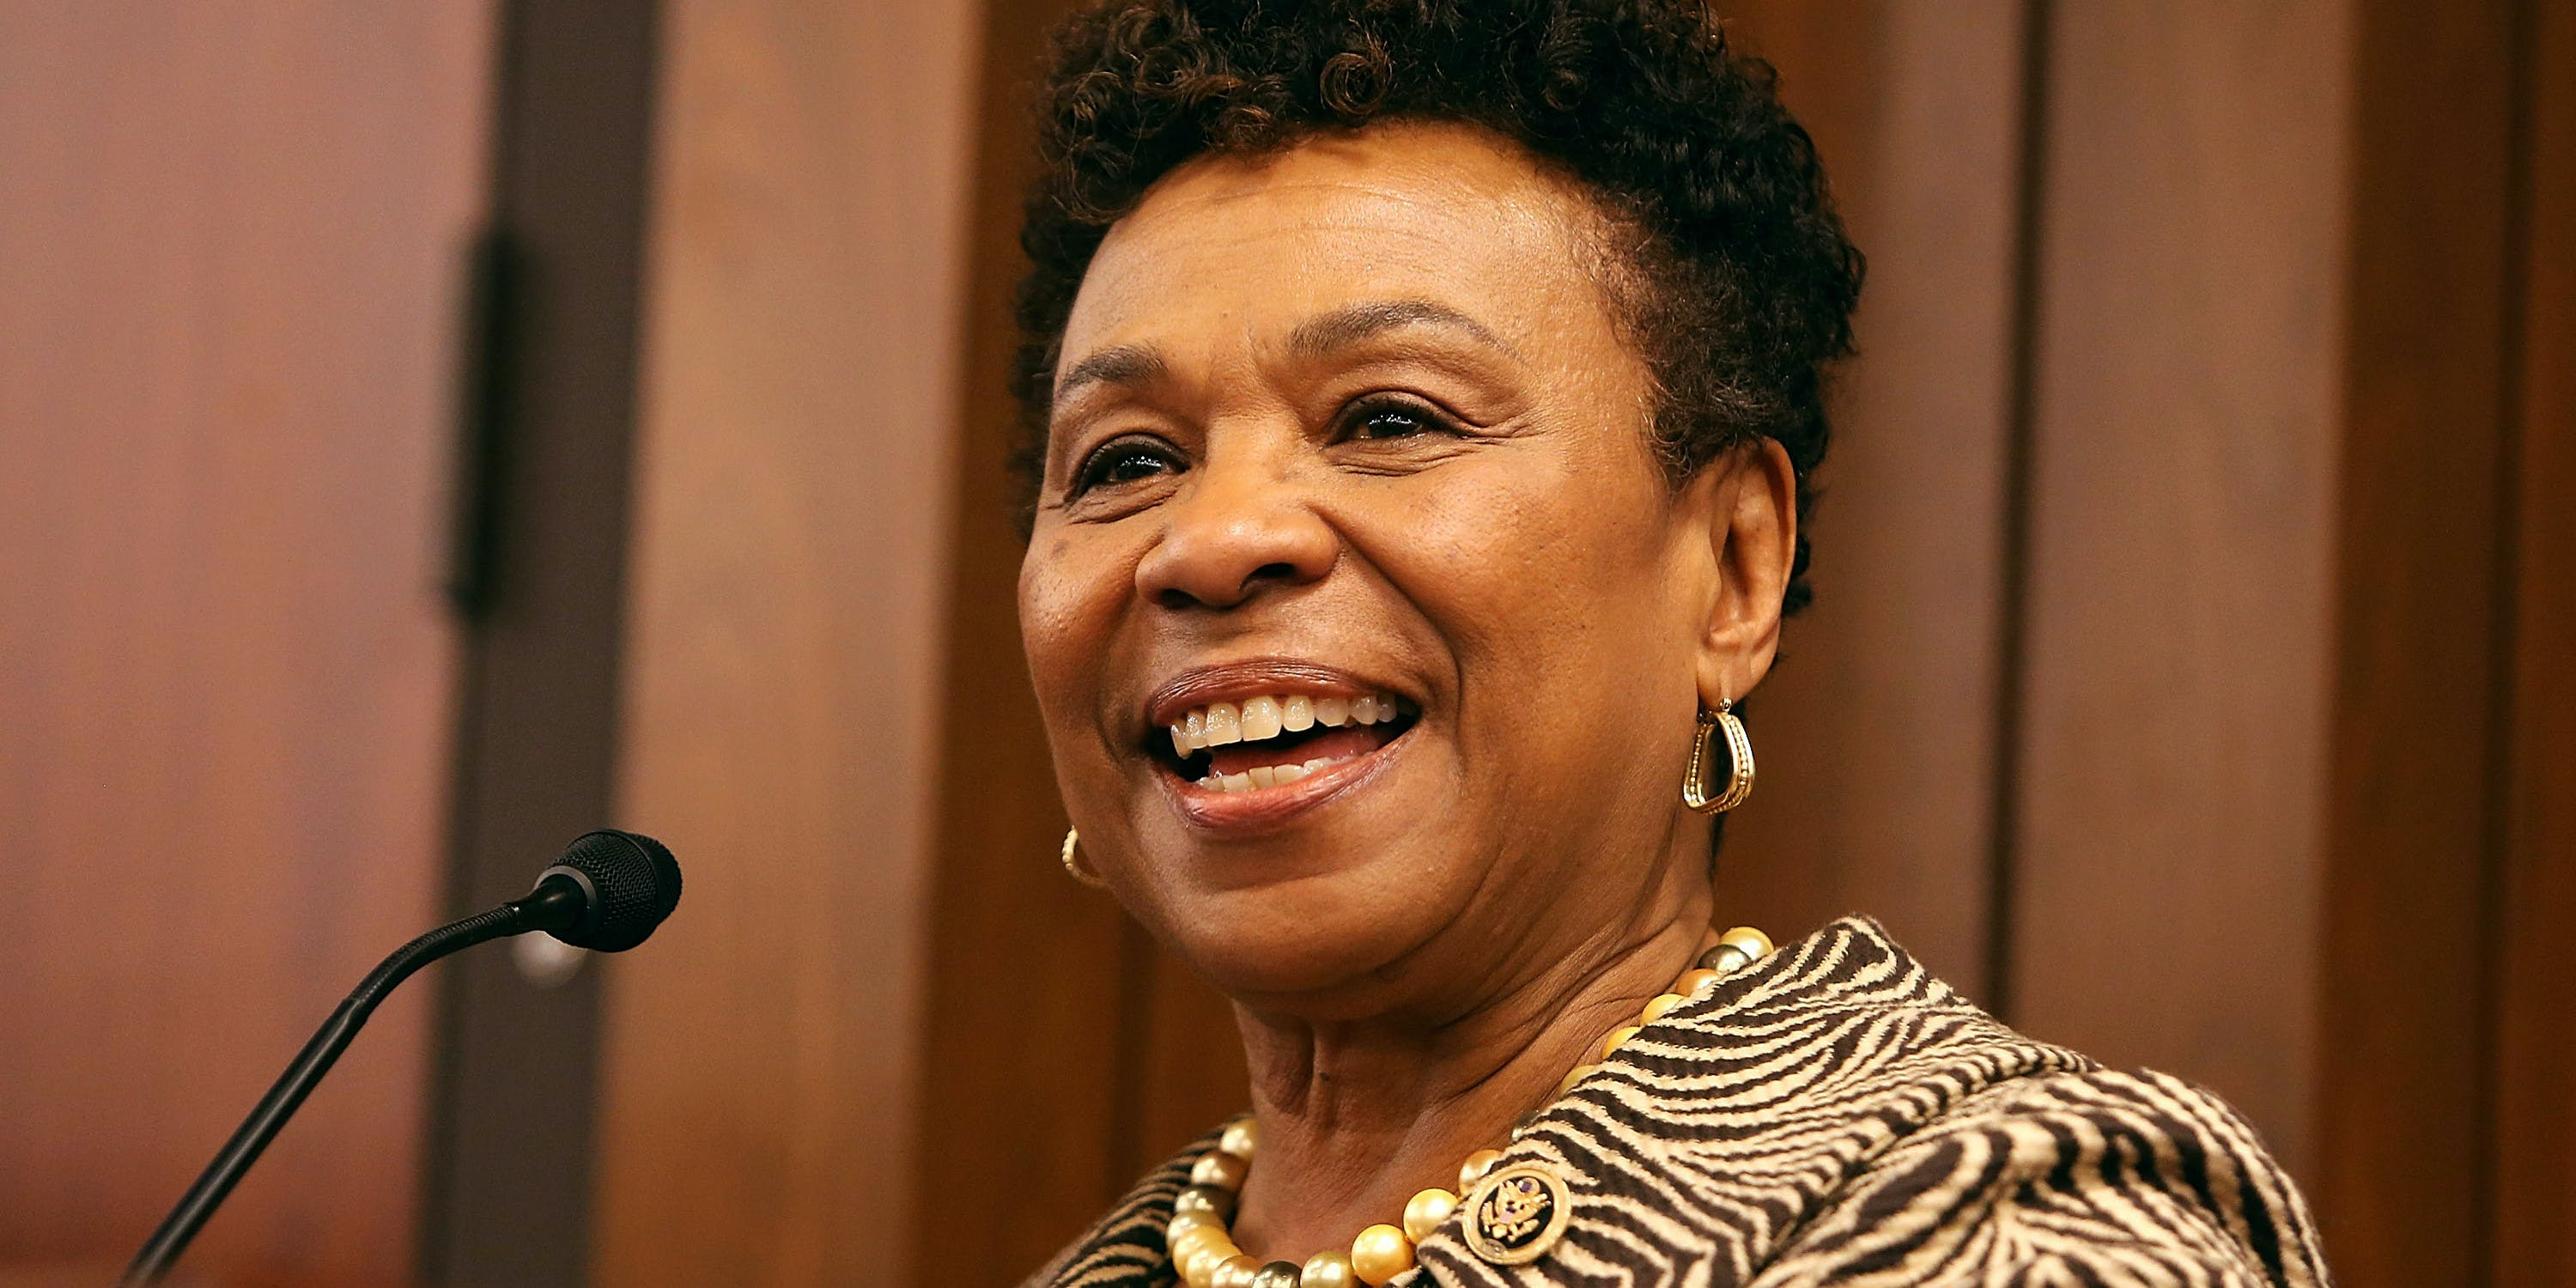 Representative Barbara Lee speaking into a microphone on stage in 2016